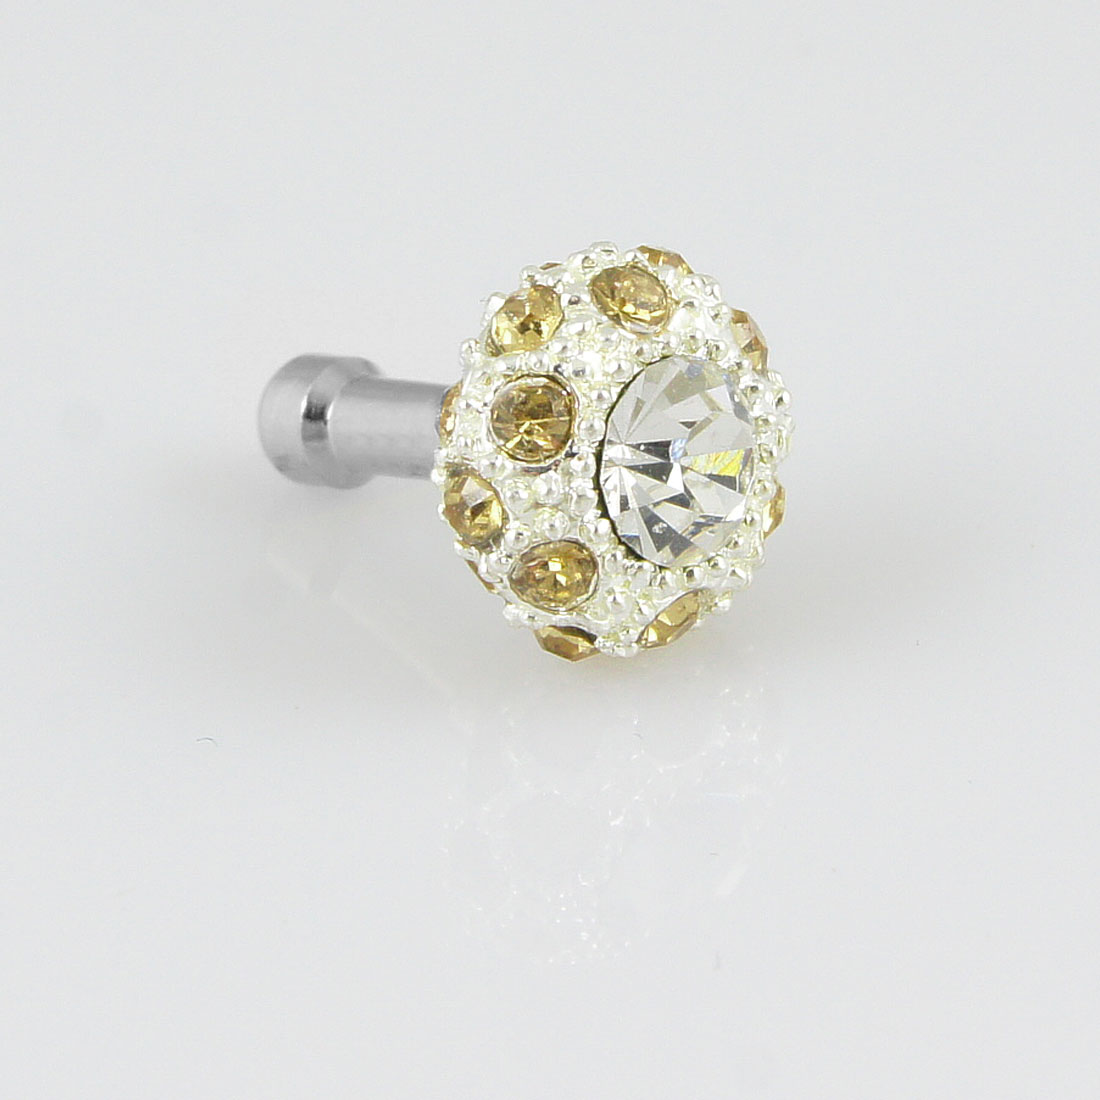 Mp3 Mp4 Mobile Phone Bling Yellow Crystal 3.5mm Earphone Anti Dust Plug Stopper